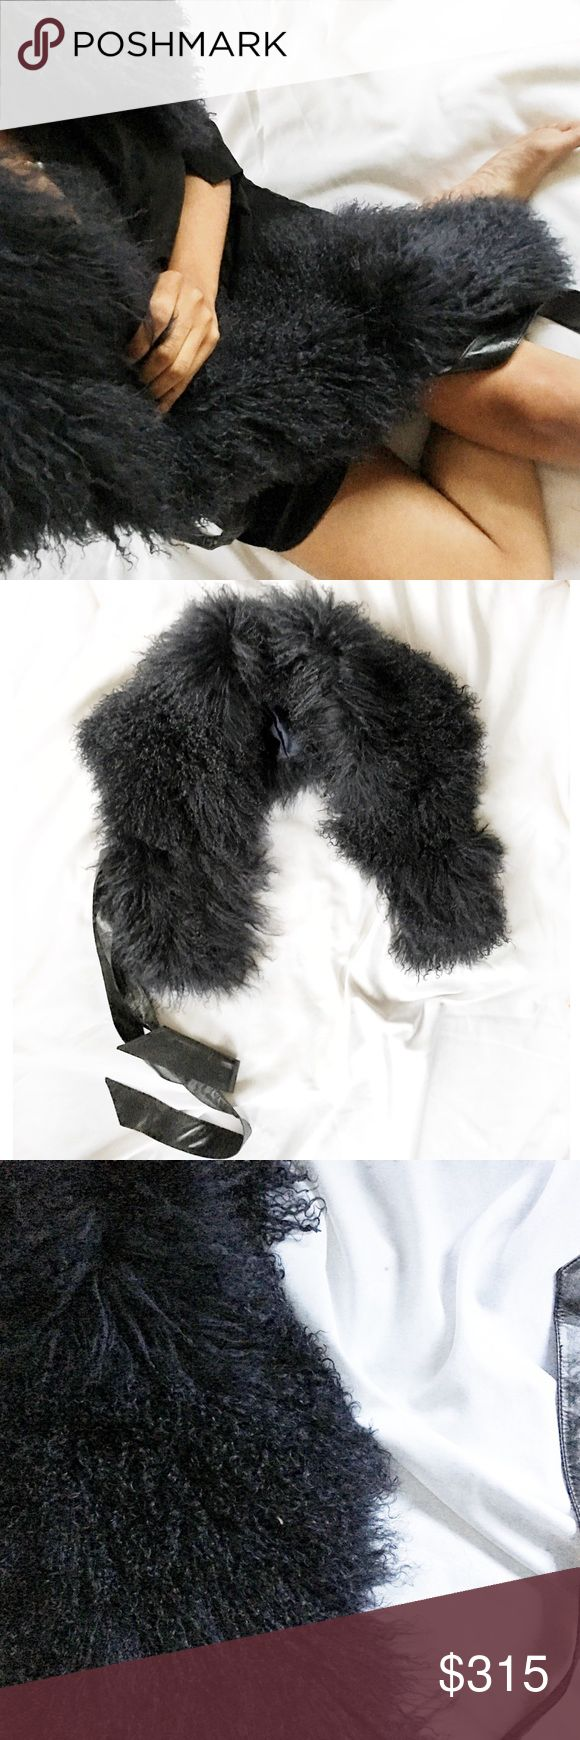 "Midnight Mongolian Fur Authentic Mongolian fur stole/ scarf with leather waist belt. Glamourpuss brand: purchased on sale for $525 from Saks. Giant and fluffy! Looking to jazz up your Free People/ Haute Hippe vibe? Or add some surprise to your Reiss/ Helmut Lang collection? Let this elegant &edgy twist add some personality to your wardrobe. Only for the daring! Measures 55"" x 10"". *I personally style all pics* NO TRADES EVER! Bundle &save even more✅ Saks Fifth Avenue Accessories Scarves…"